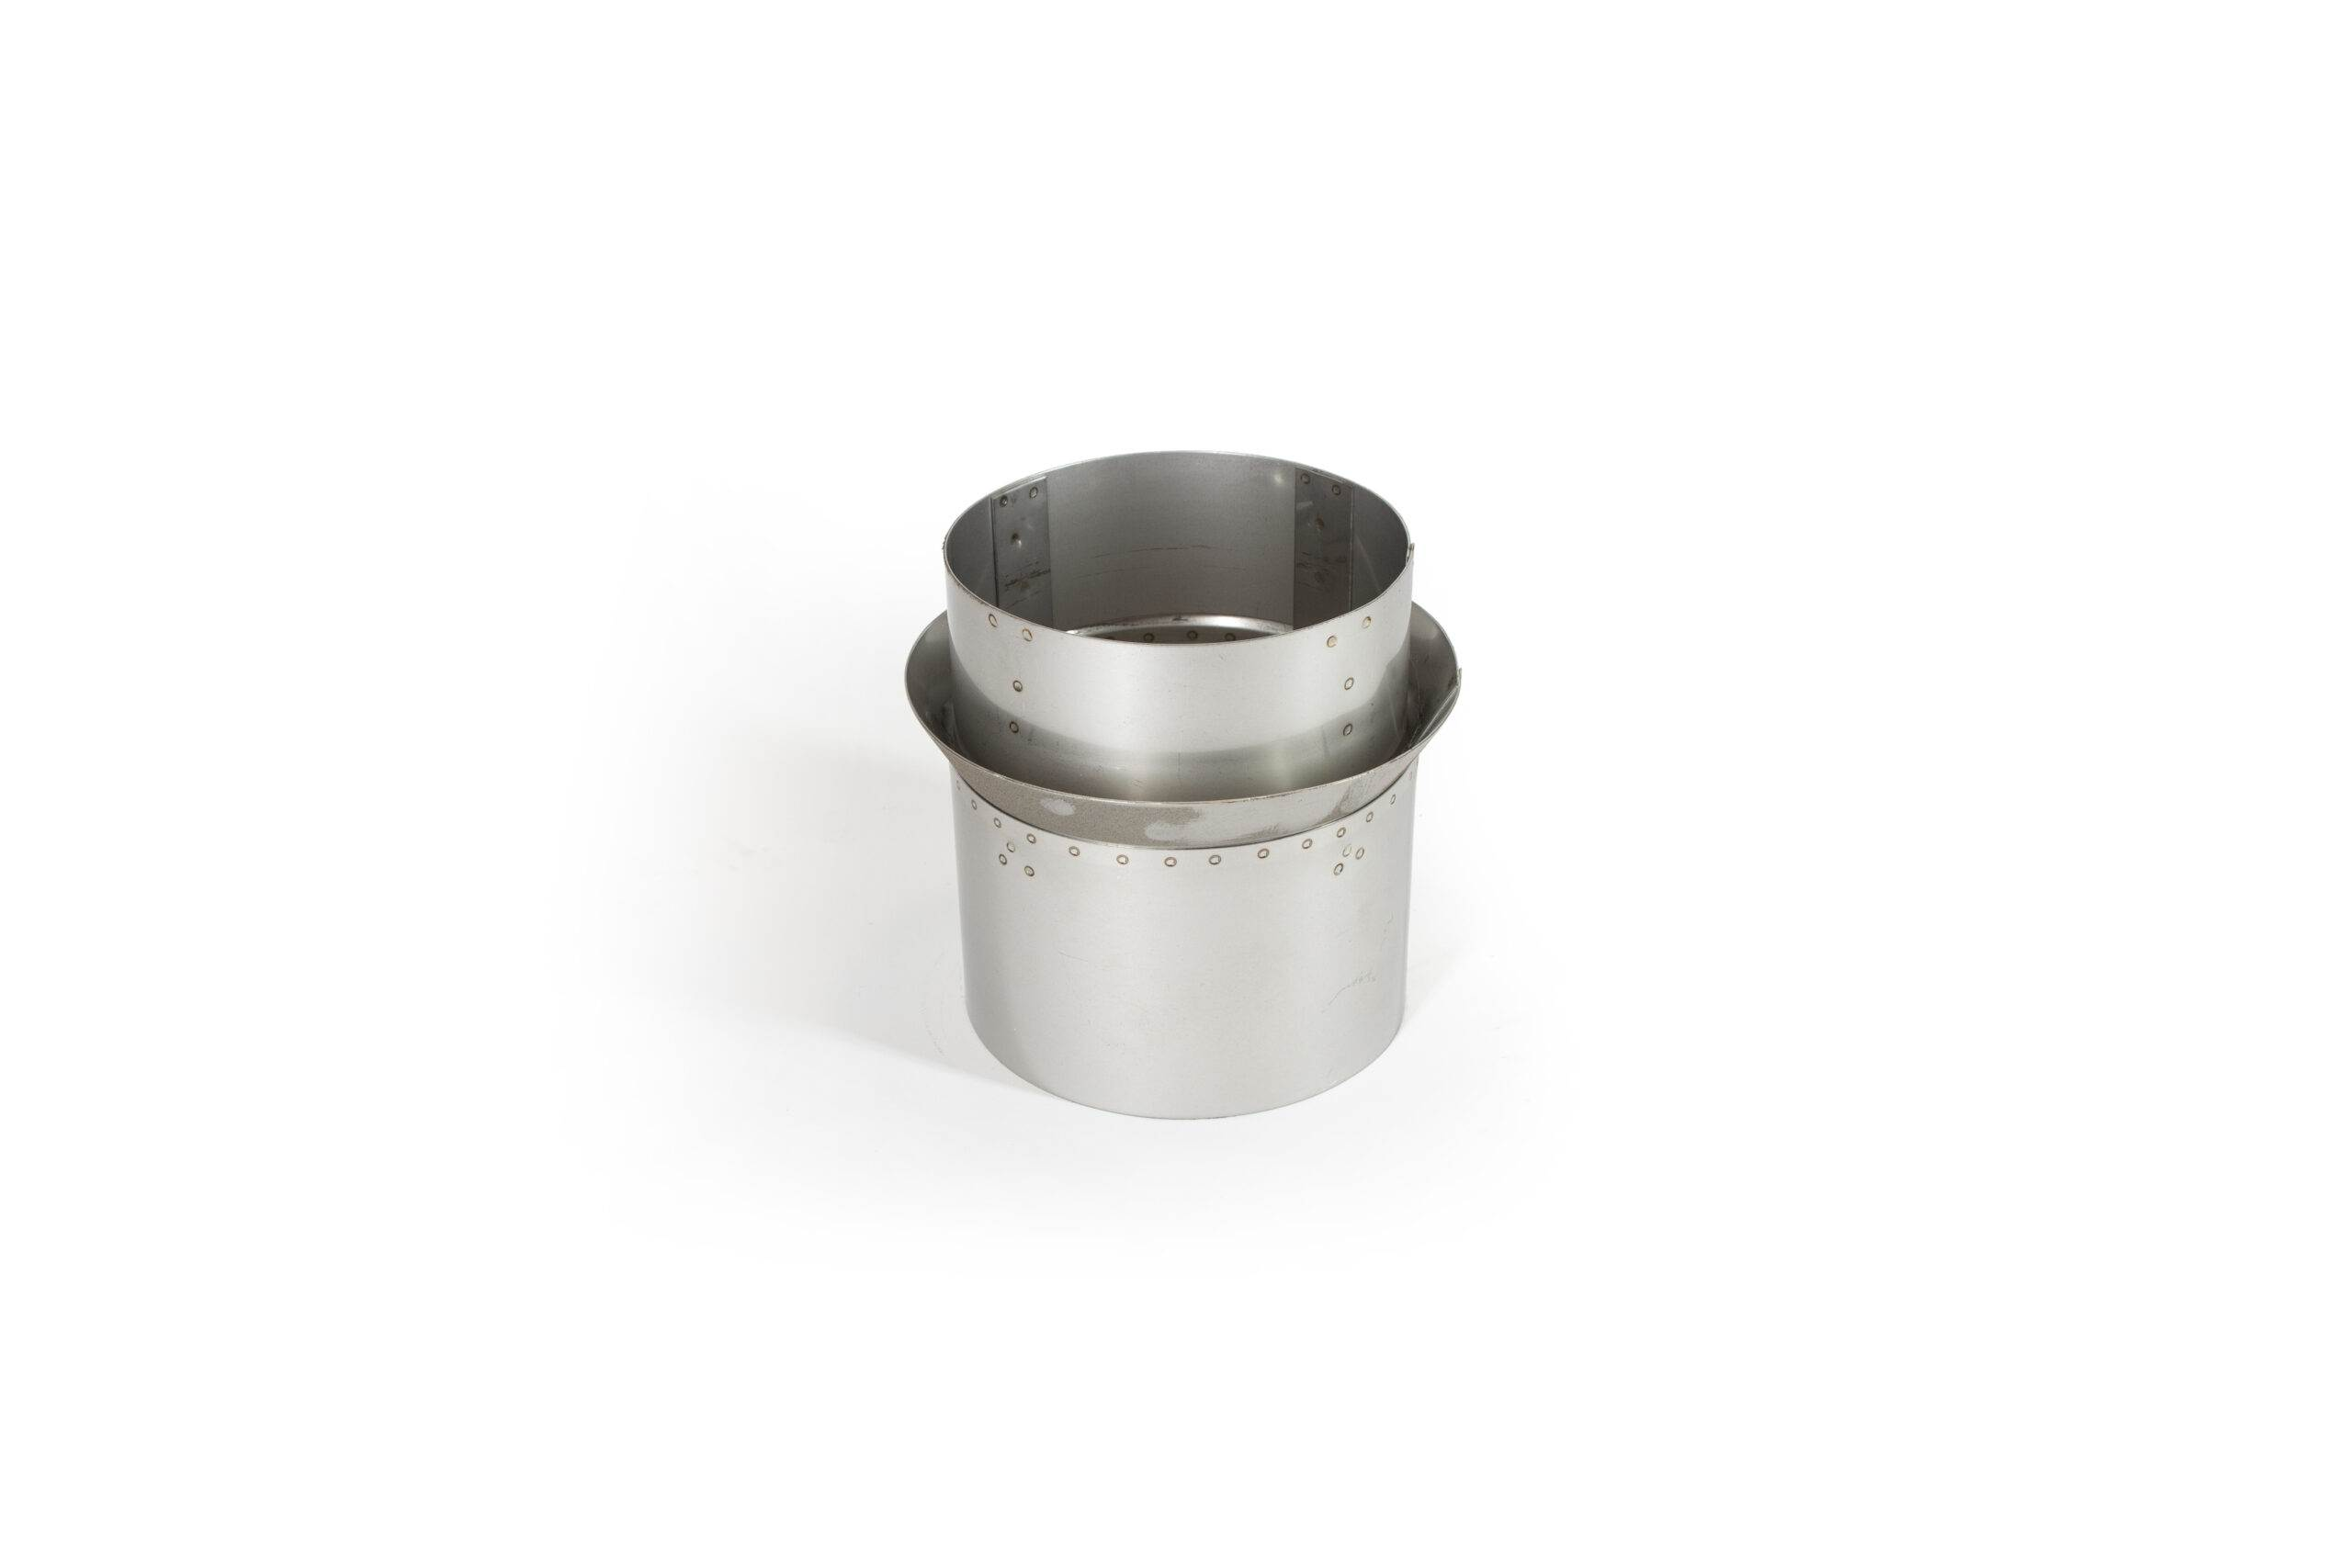 Clay Liner Adaptor - Stainless Steel